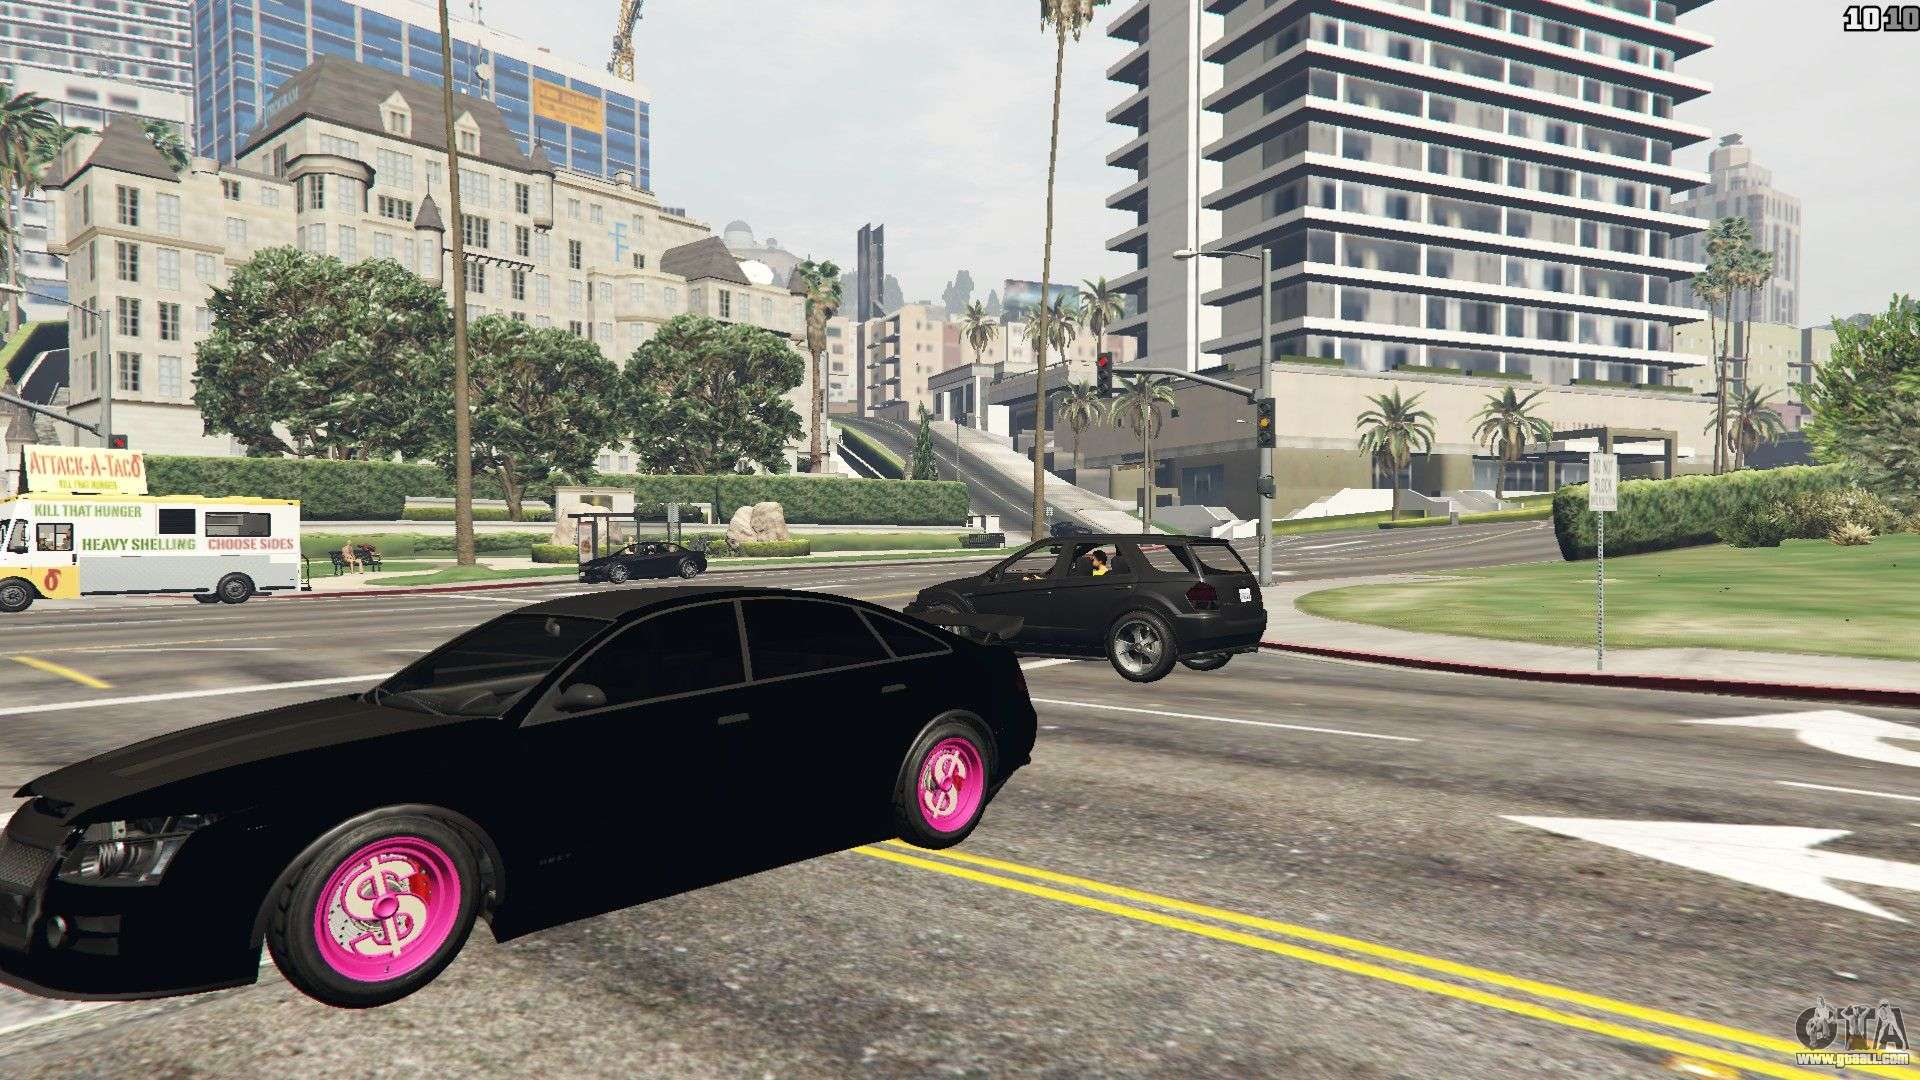 How to increase FPS in GTA 5 on low-end computers